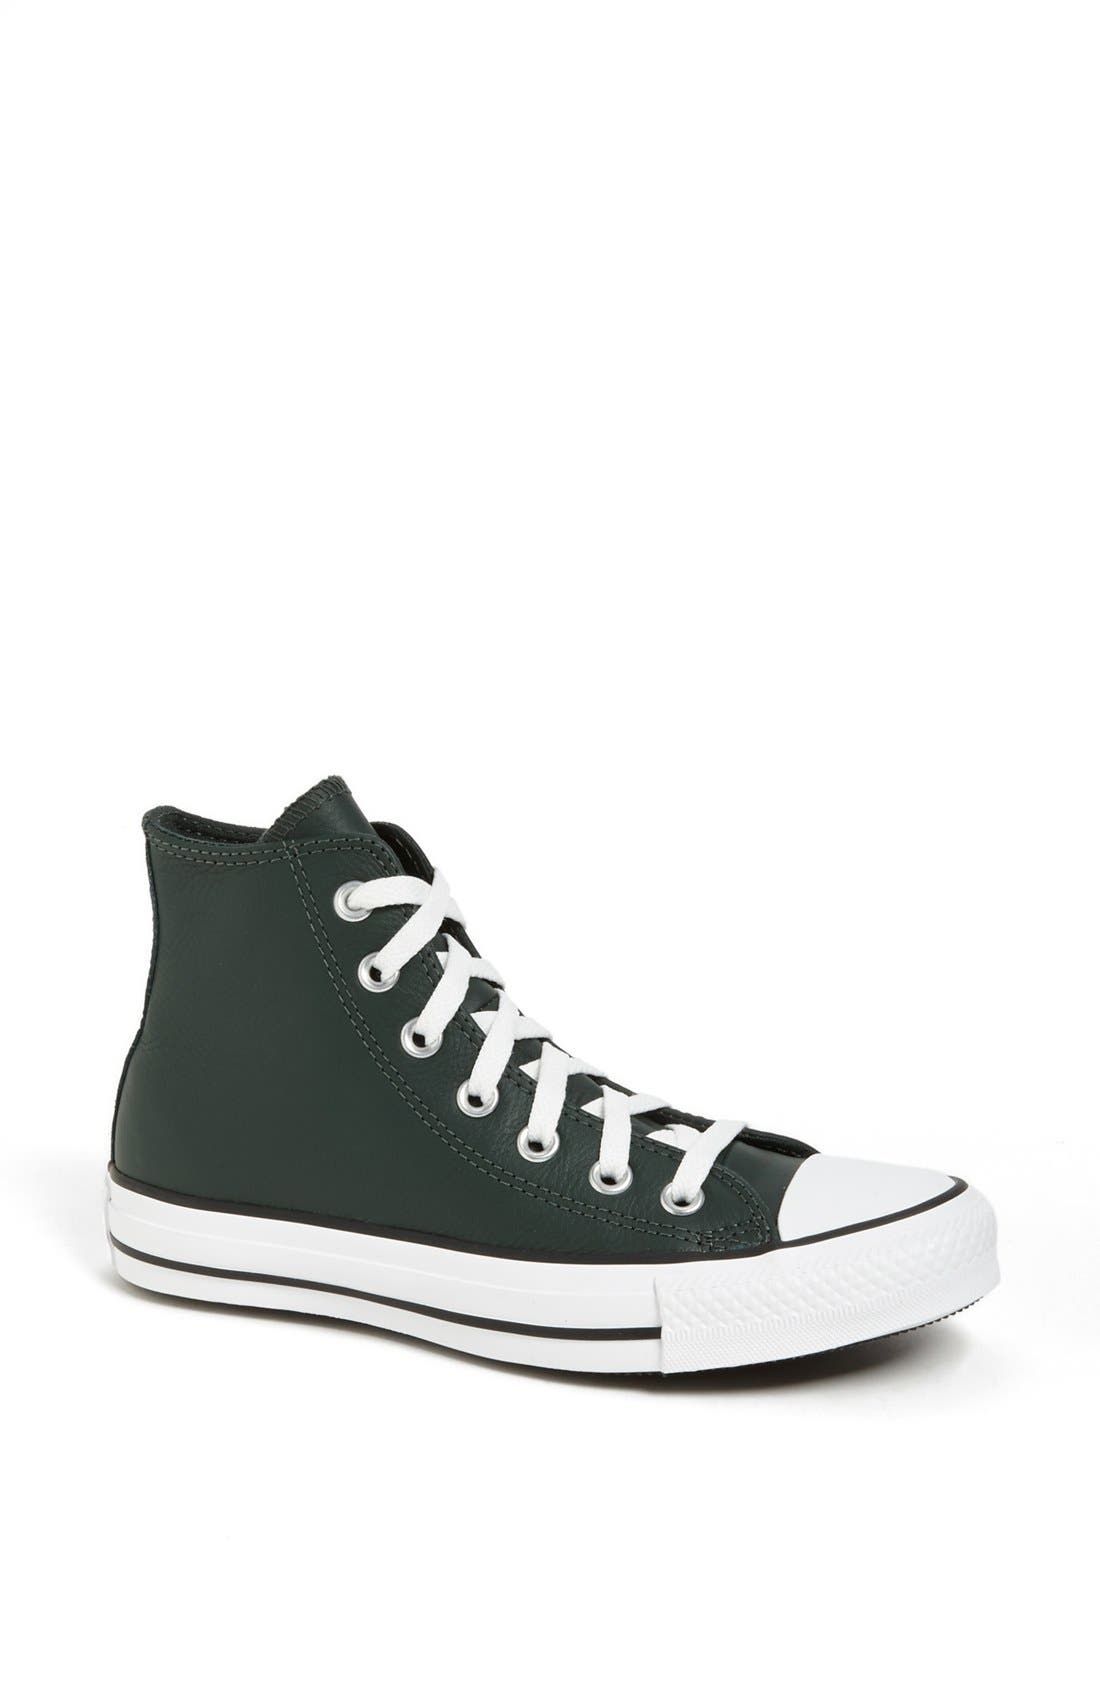 Alternate Image 1 Selected - Converse Chuck Taylor® All Star® Leather High Top Sneaker (Women)